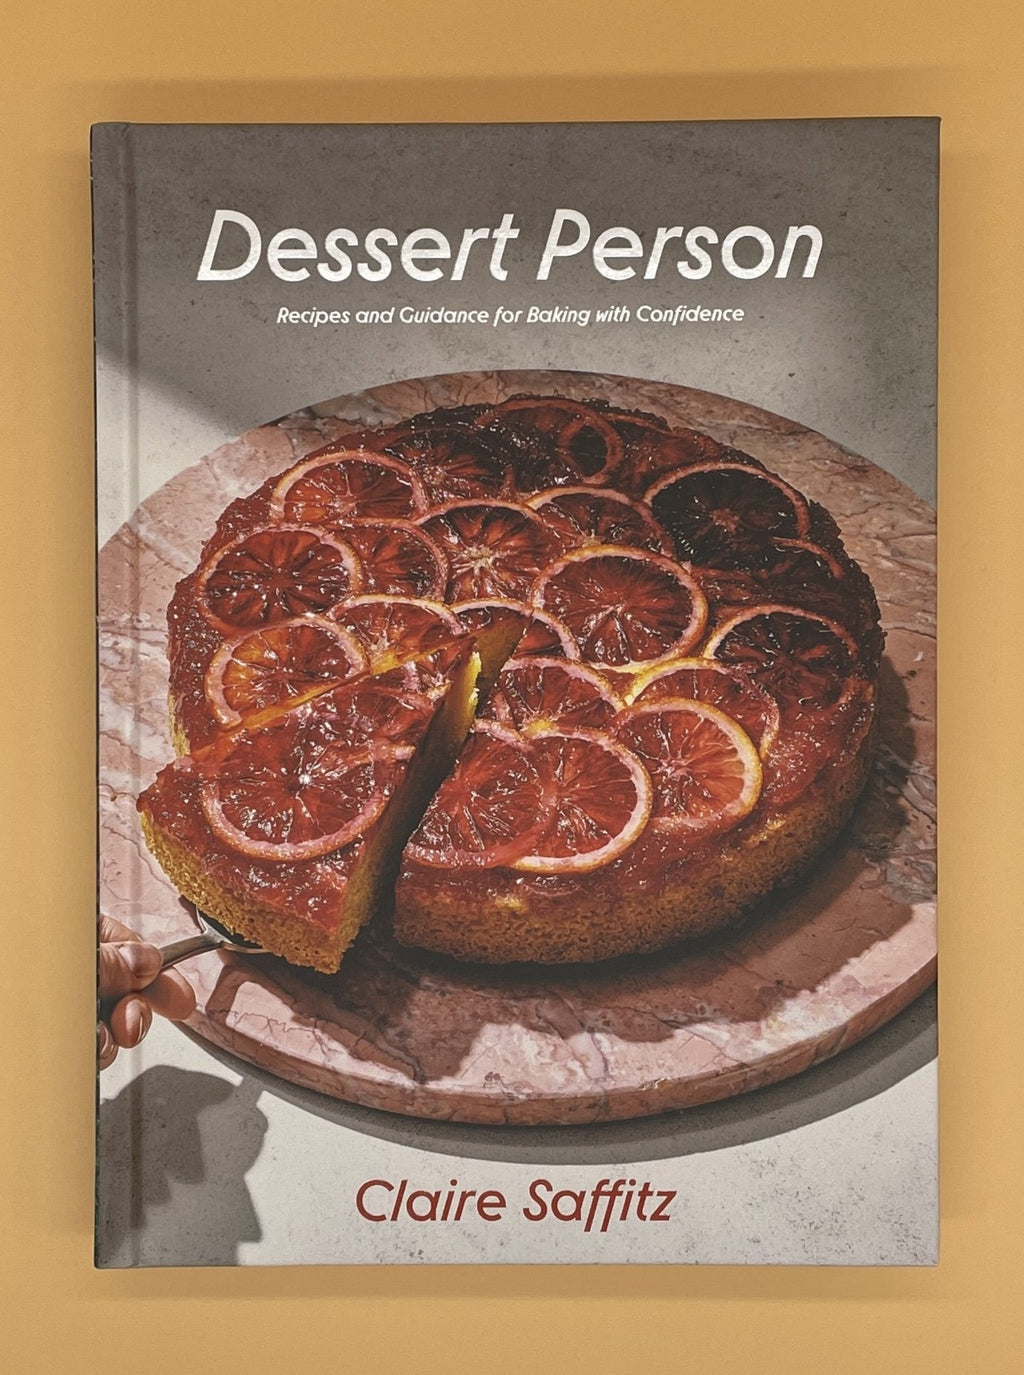 Dessert Person (Claire Saffitz)